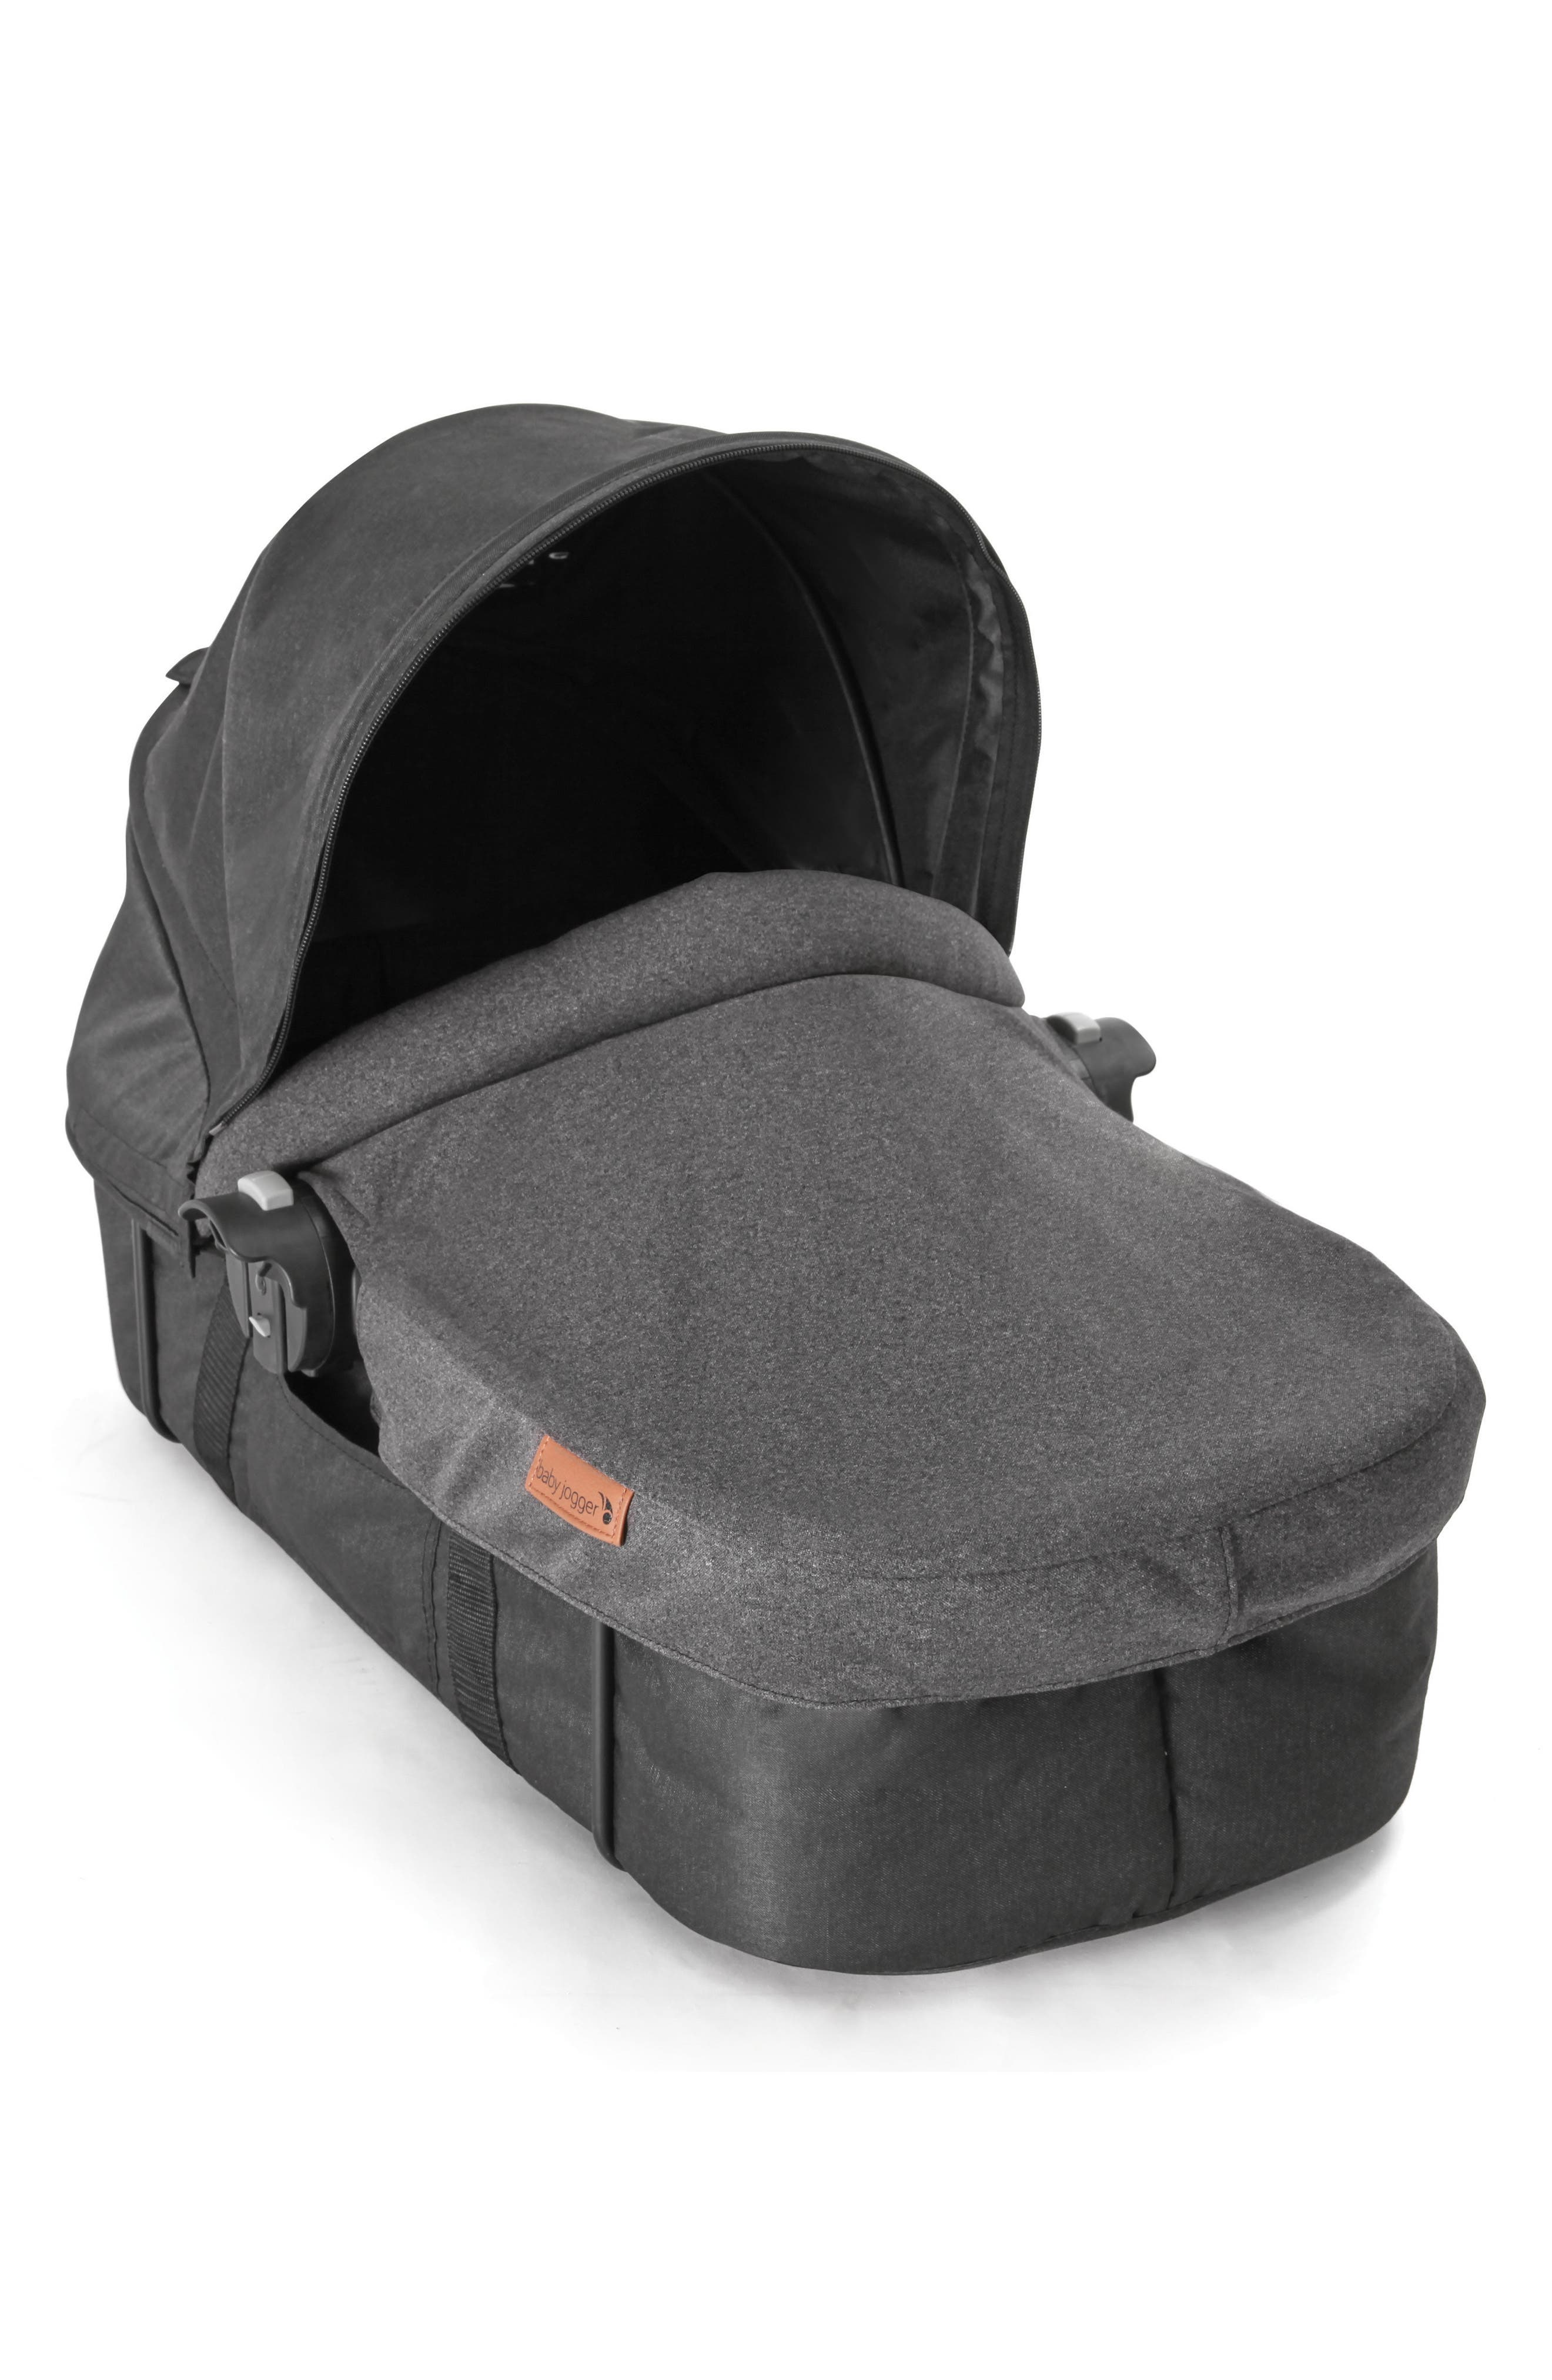 Deluxe Pram Converter Kit for City Select<sup>®</sup> 2018 Stroller,                         Main,                         color, Grey